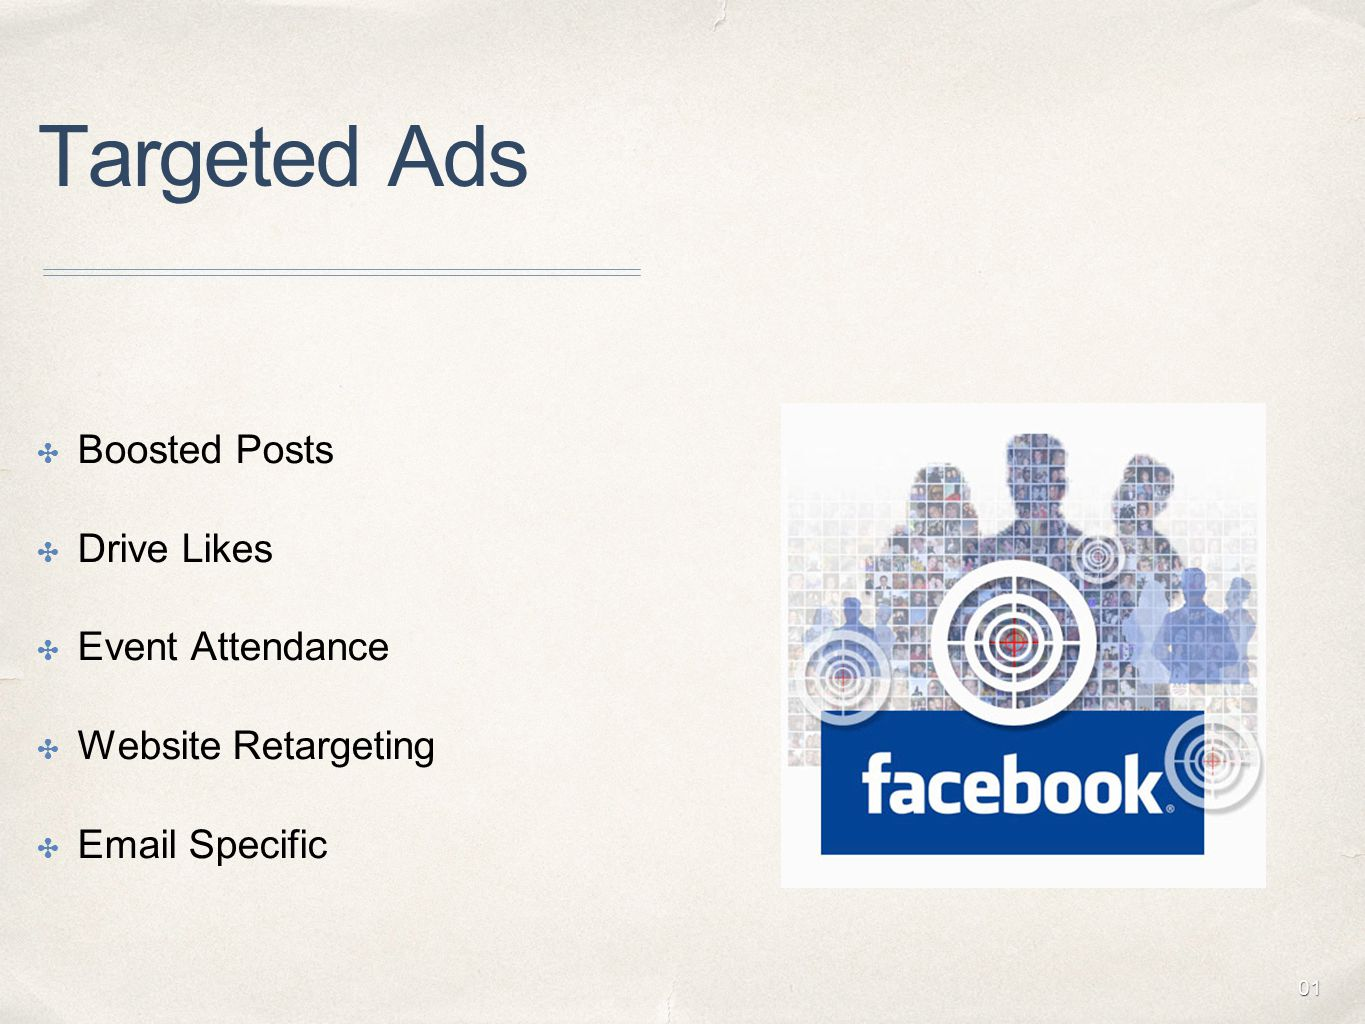 01 Targeted Ads ✤ Boosted Posts ✤ Drive Likes ✤ Event Attendance ✤ Website Retargeting ✤ Email Specific